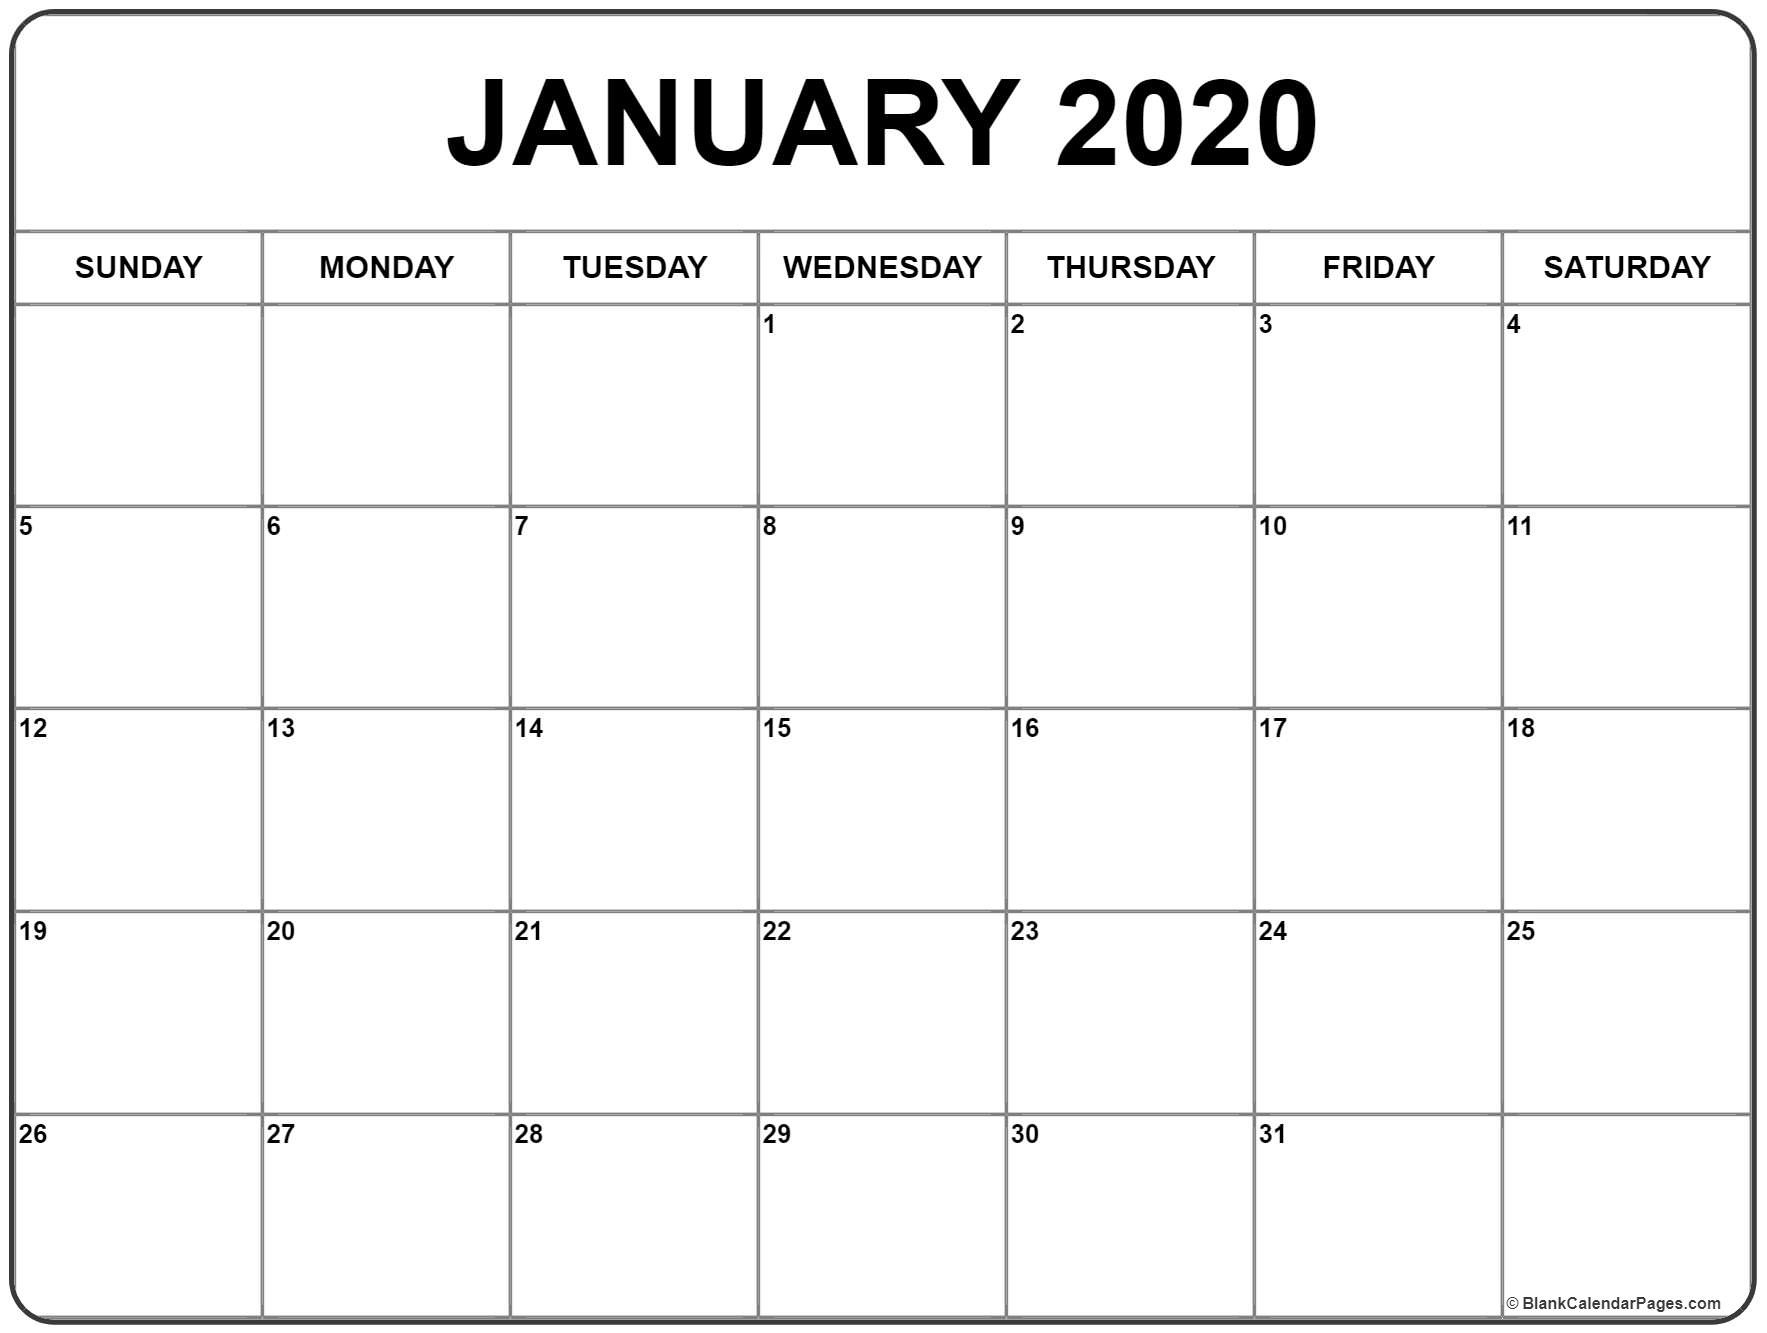 January 2020 Calendar | Free Printable Monthly Calendars-January 2020 Calendar Month